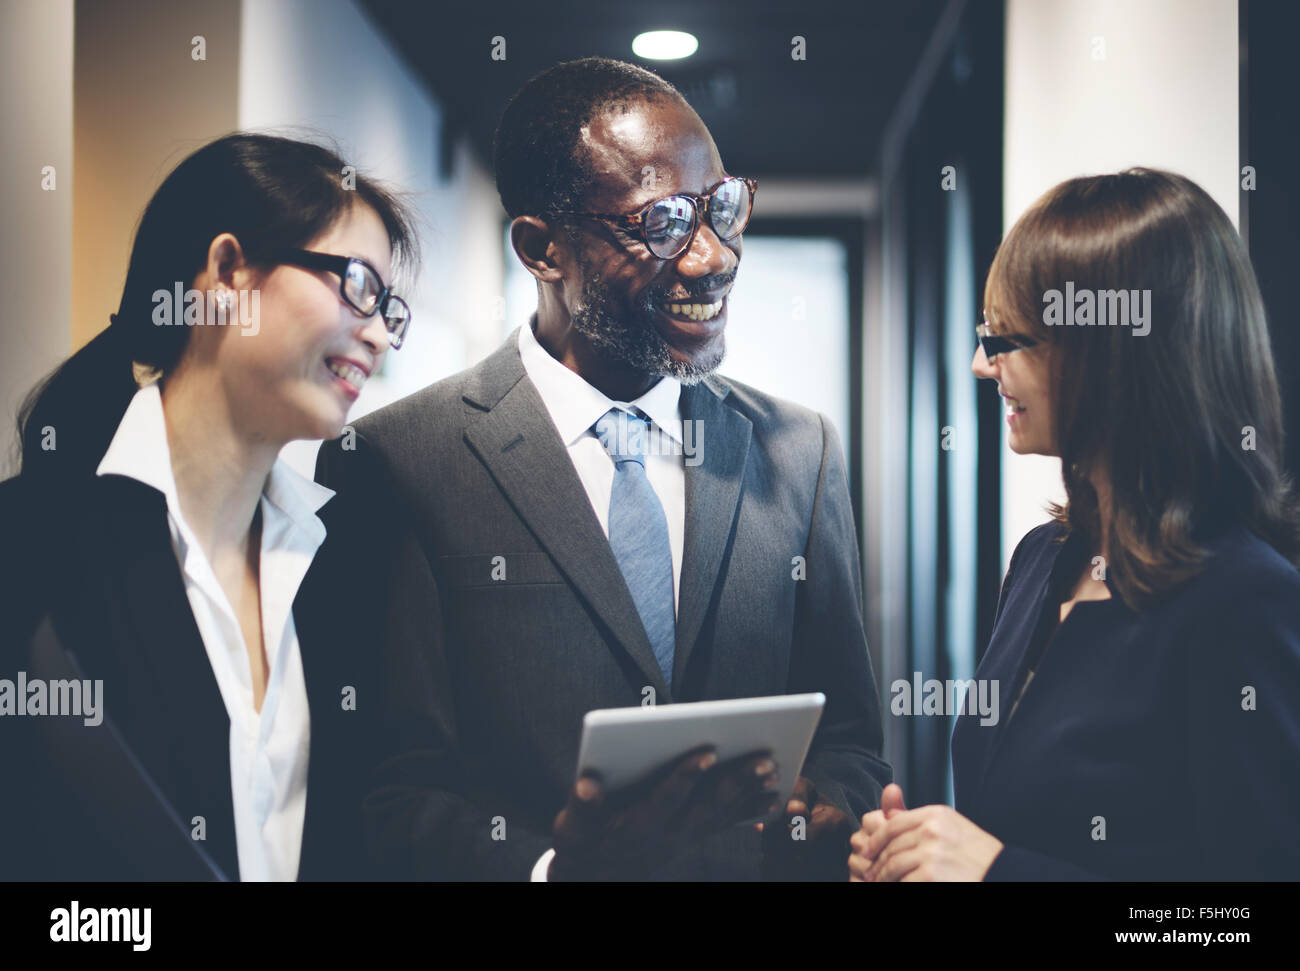 Cheerful Business People Communication Corporate - Stock Image